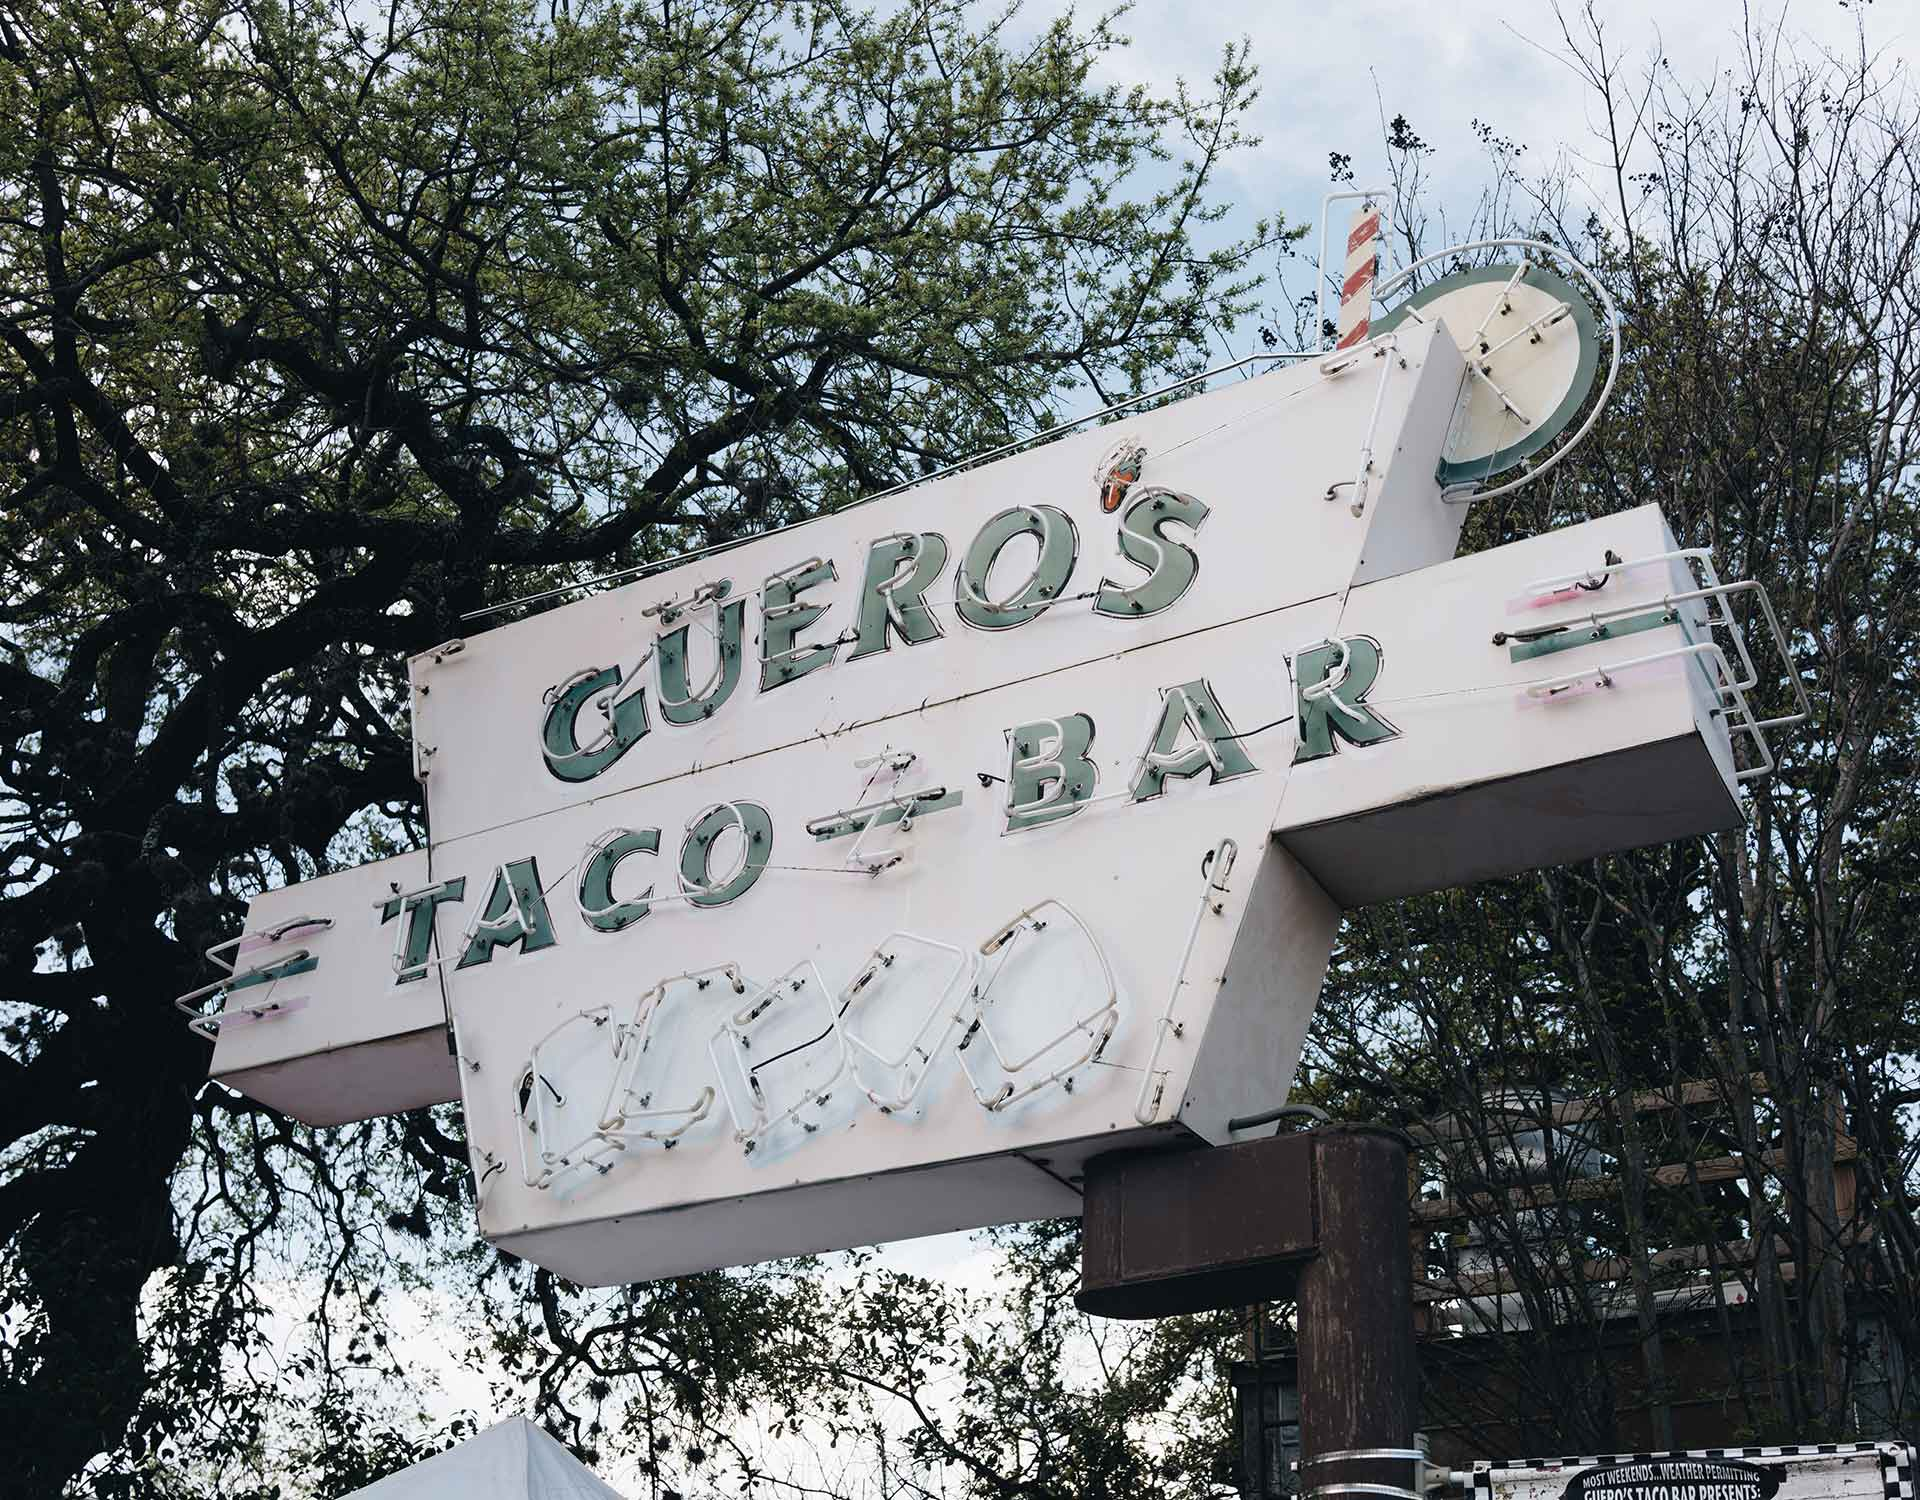 Guero's Taco Bar in Austin, Texas